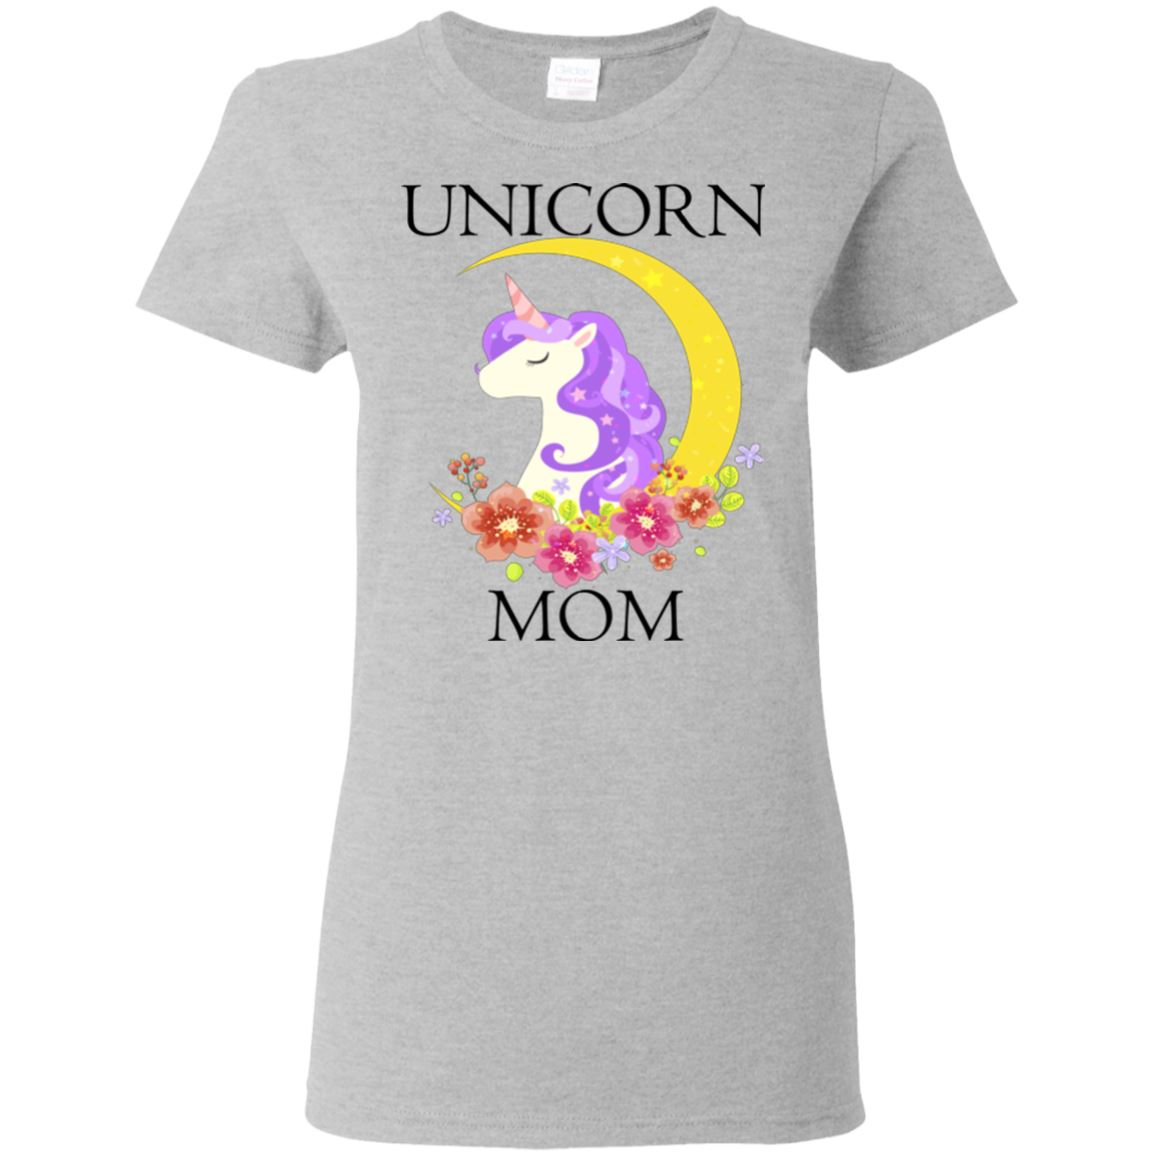 Unicorn Mom Ladies T-Shirt Apparel Sport Grey S